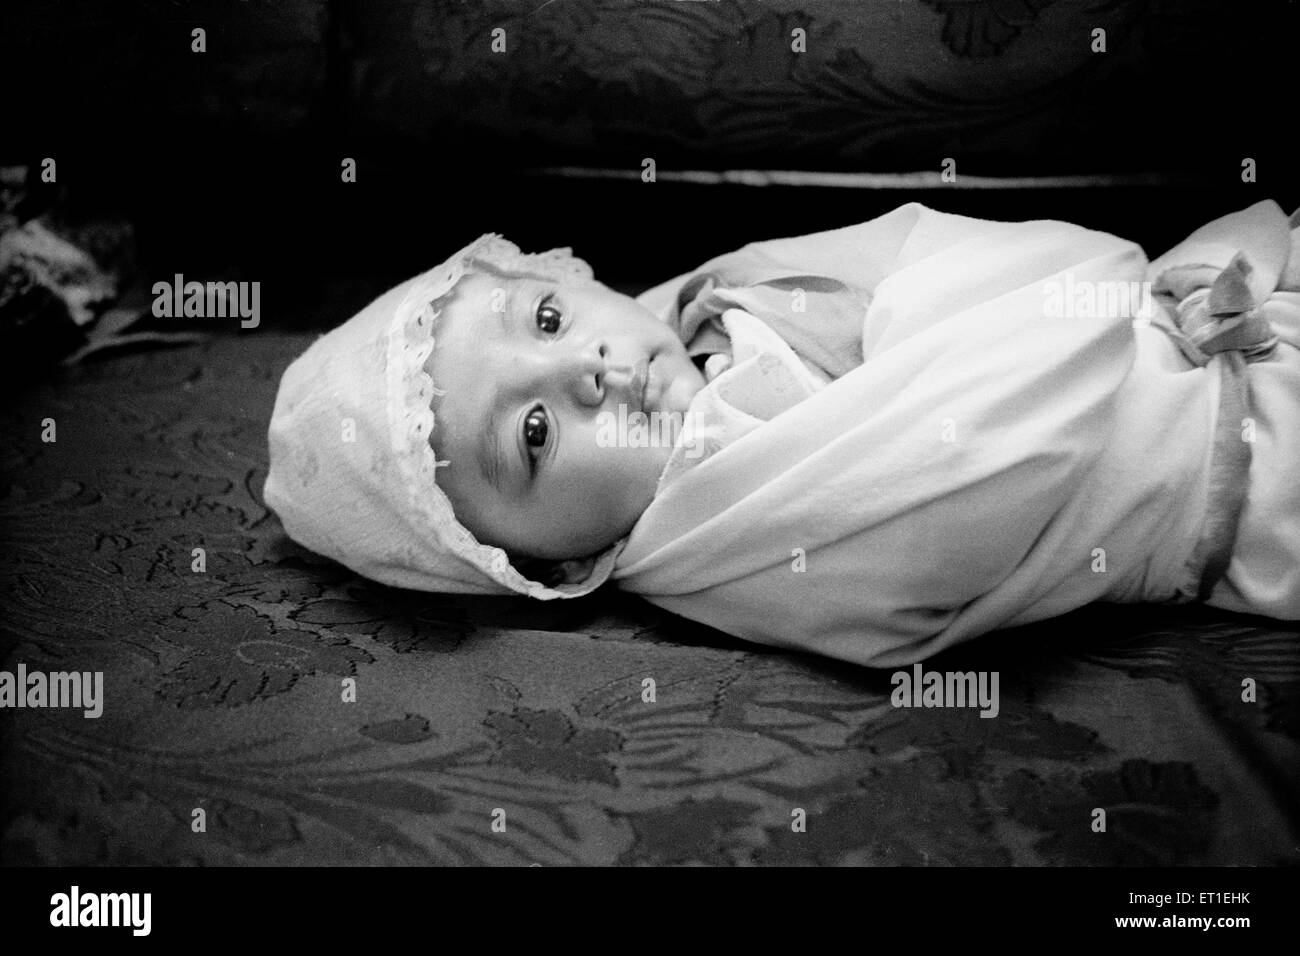 New born baby ; India MR#400 - Stock Image